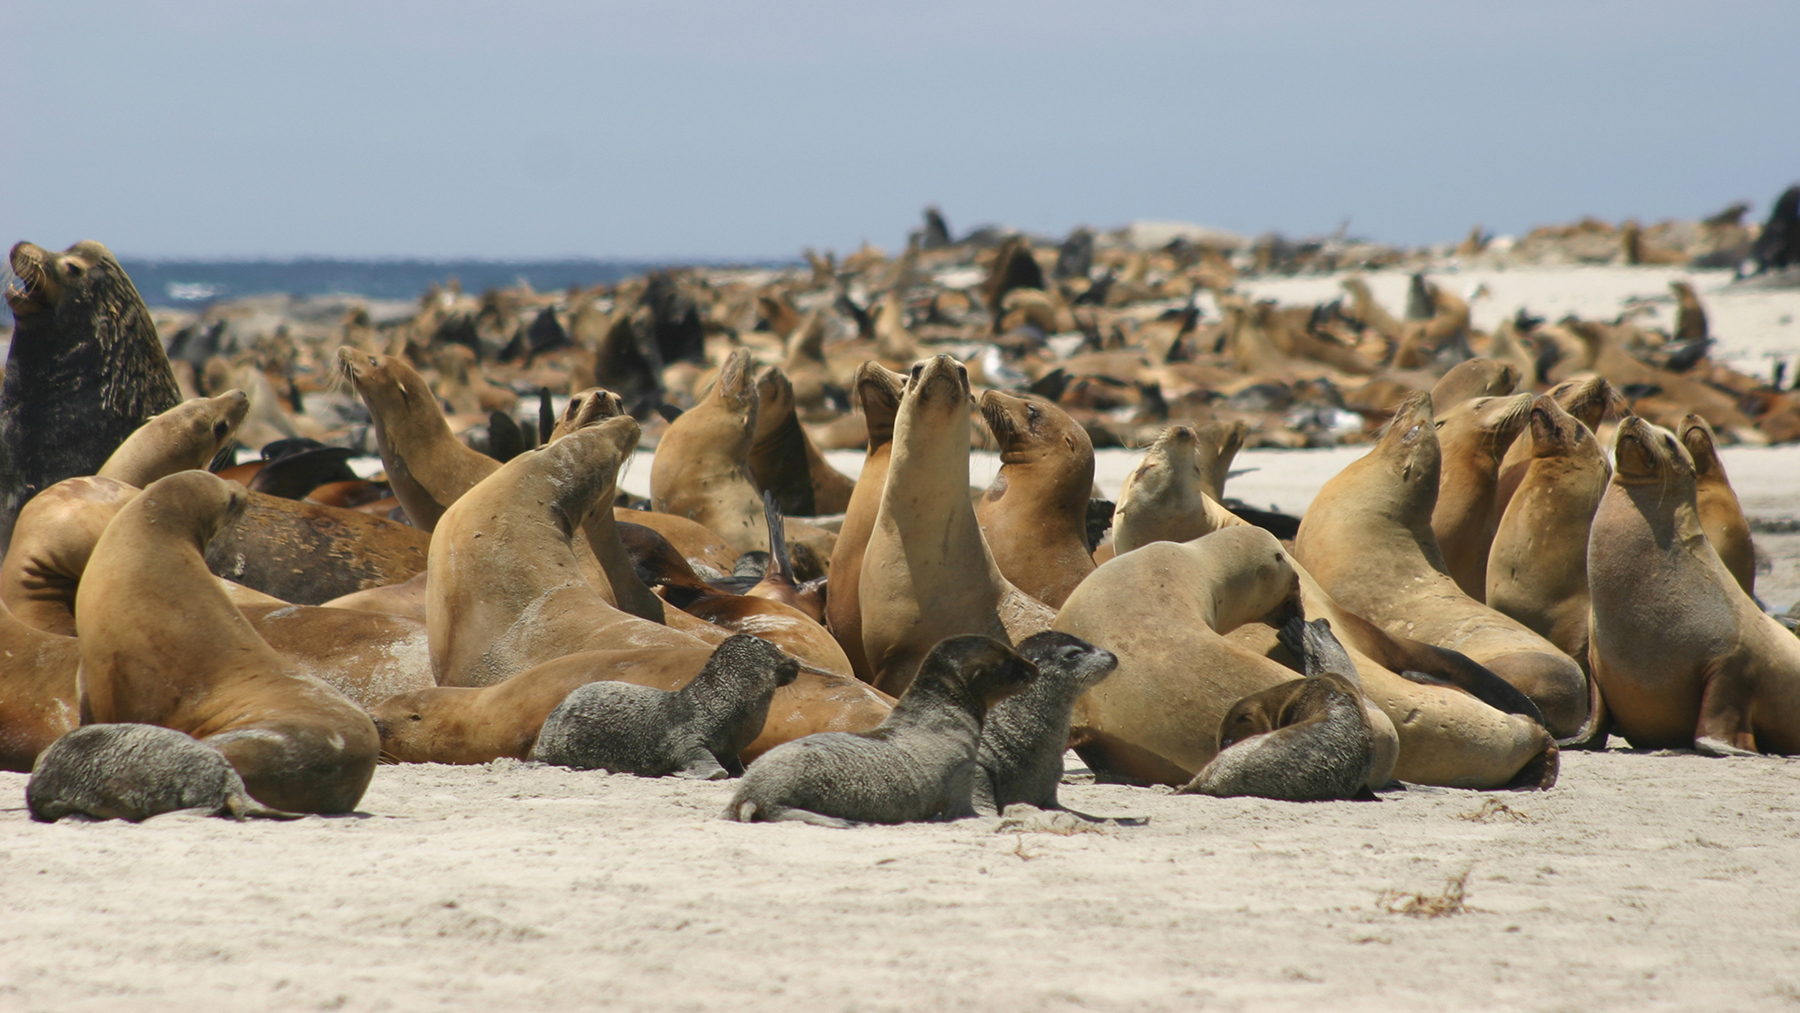 Thousands of sea lions gather on the breeding beaches of San Miguel Island, one of the Channel Islands off the coast of Southern California. Photo: Alaska Fisheries Science Center/NOAA Fisheries.